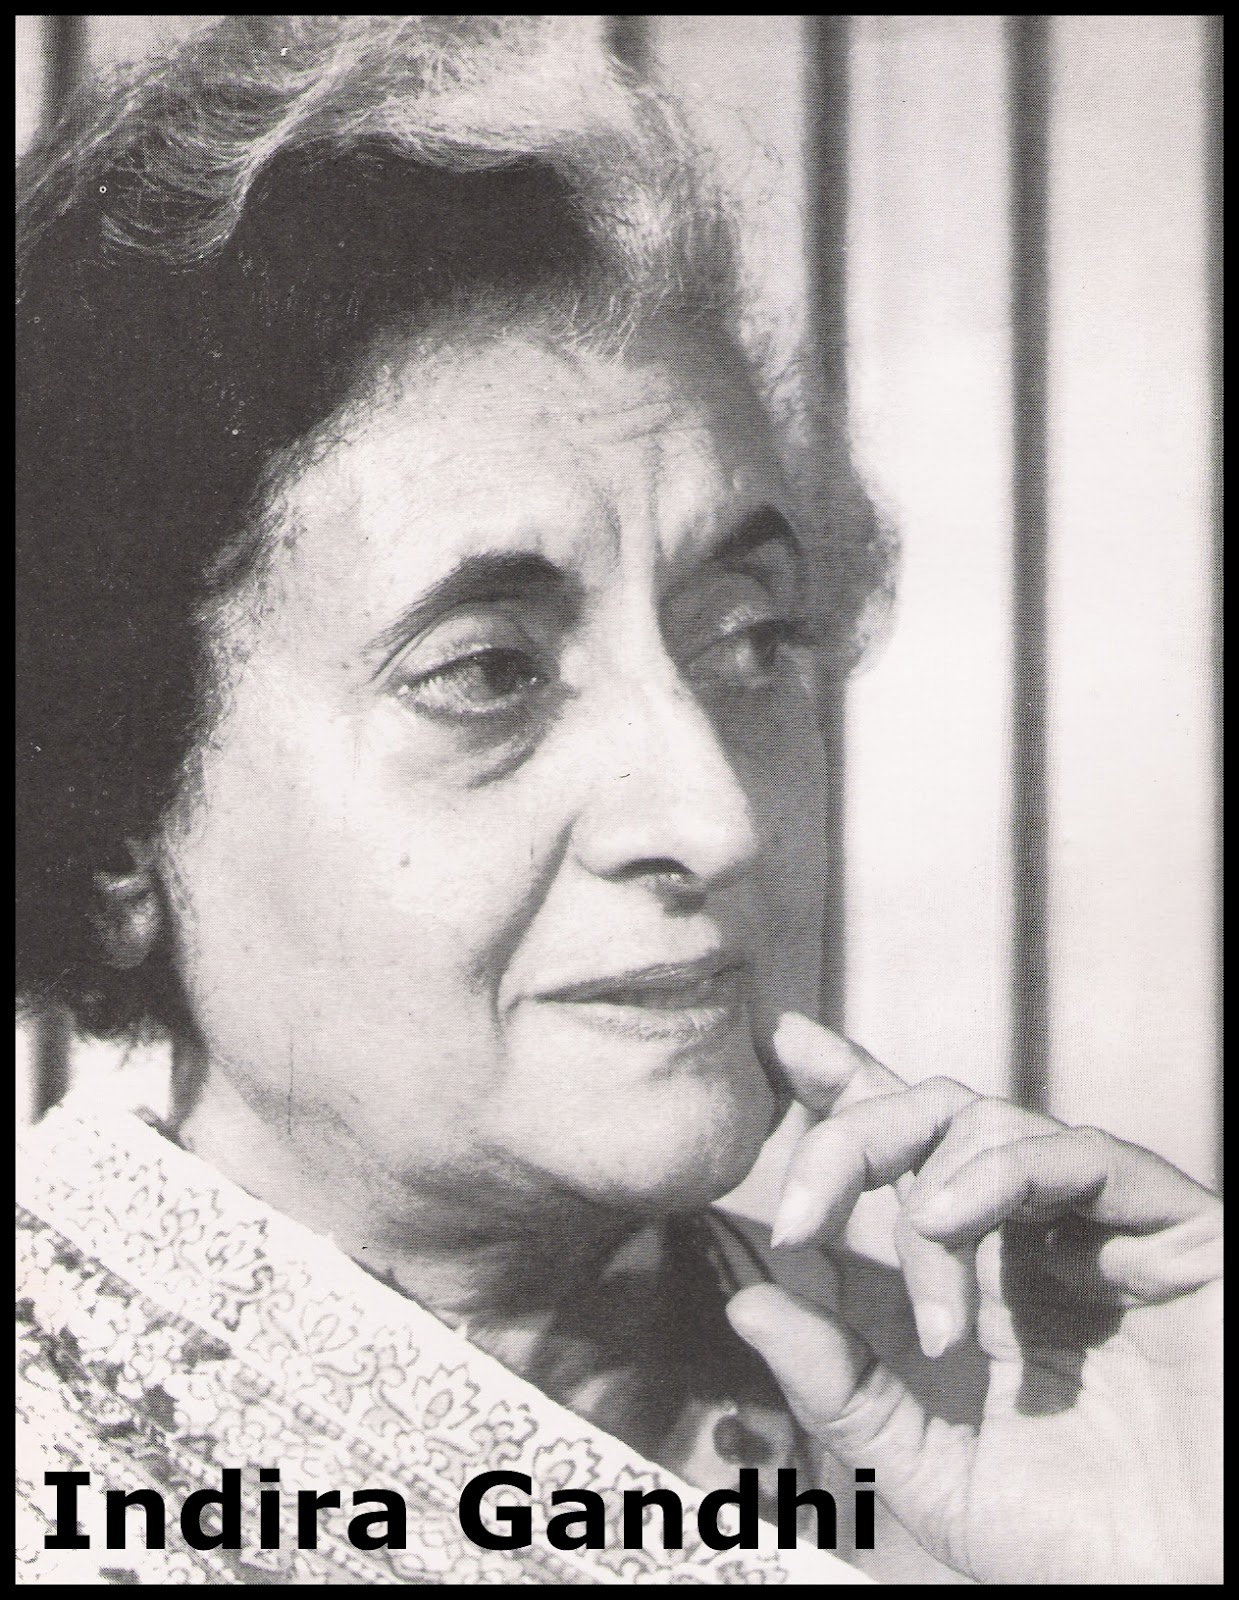 prime minister indira gandhi essay Indira gandhi mrs indira gandhi was a great national leader she was the third prime minister of free india indira gandhi was the only child of pandit jawaharlal nehru.